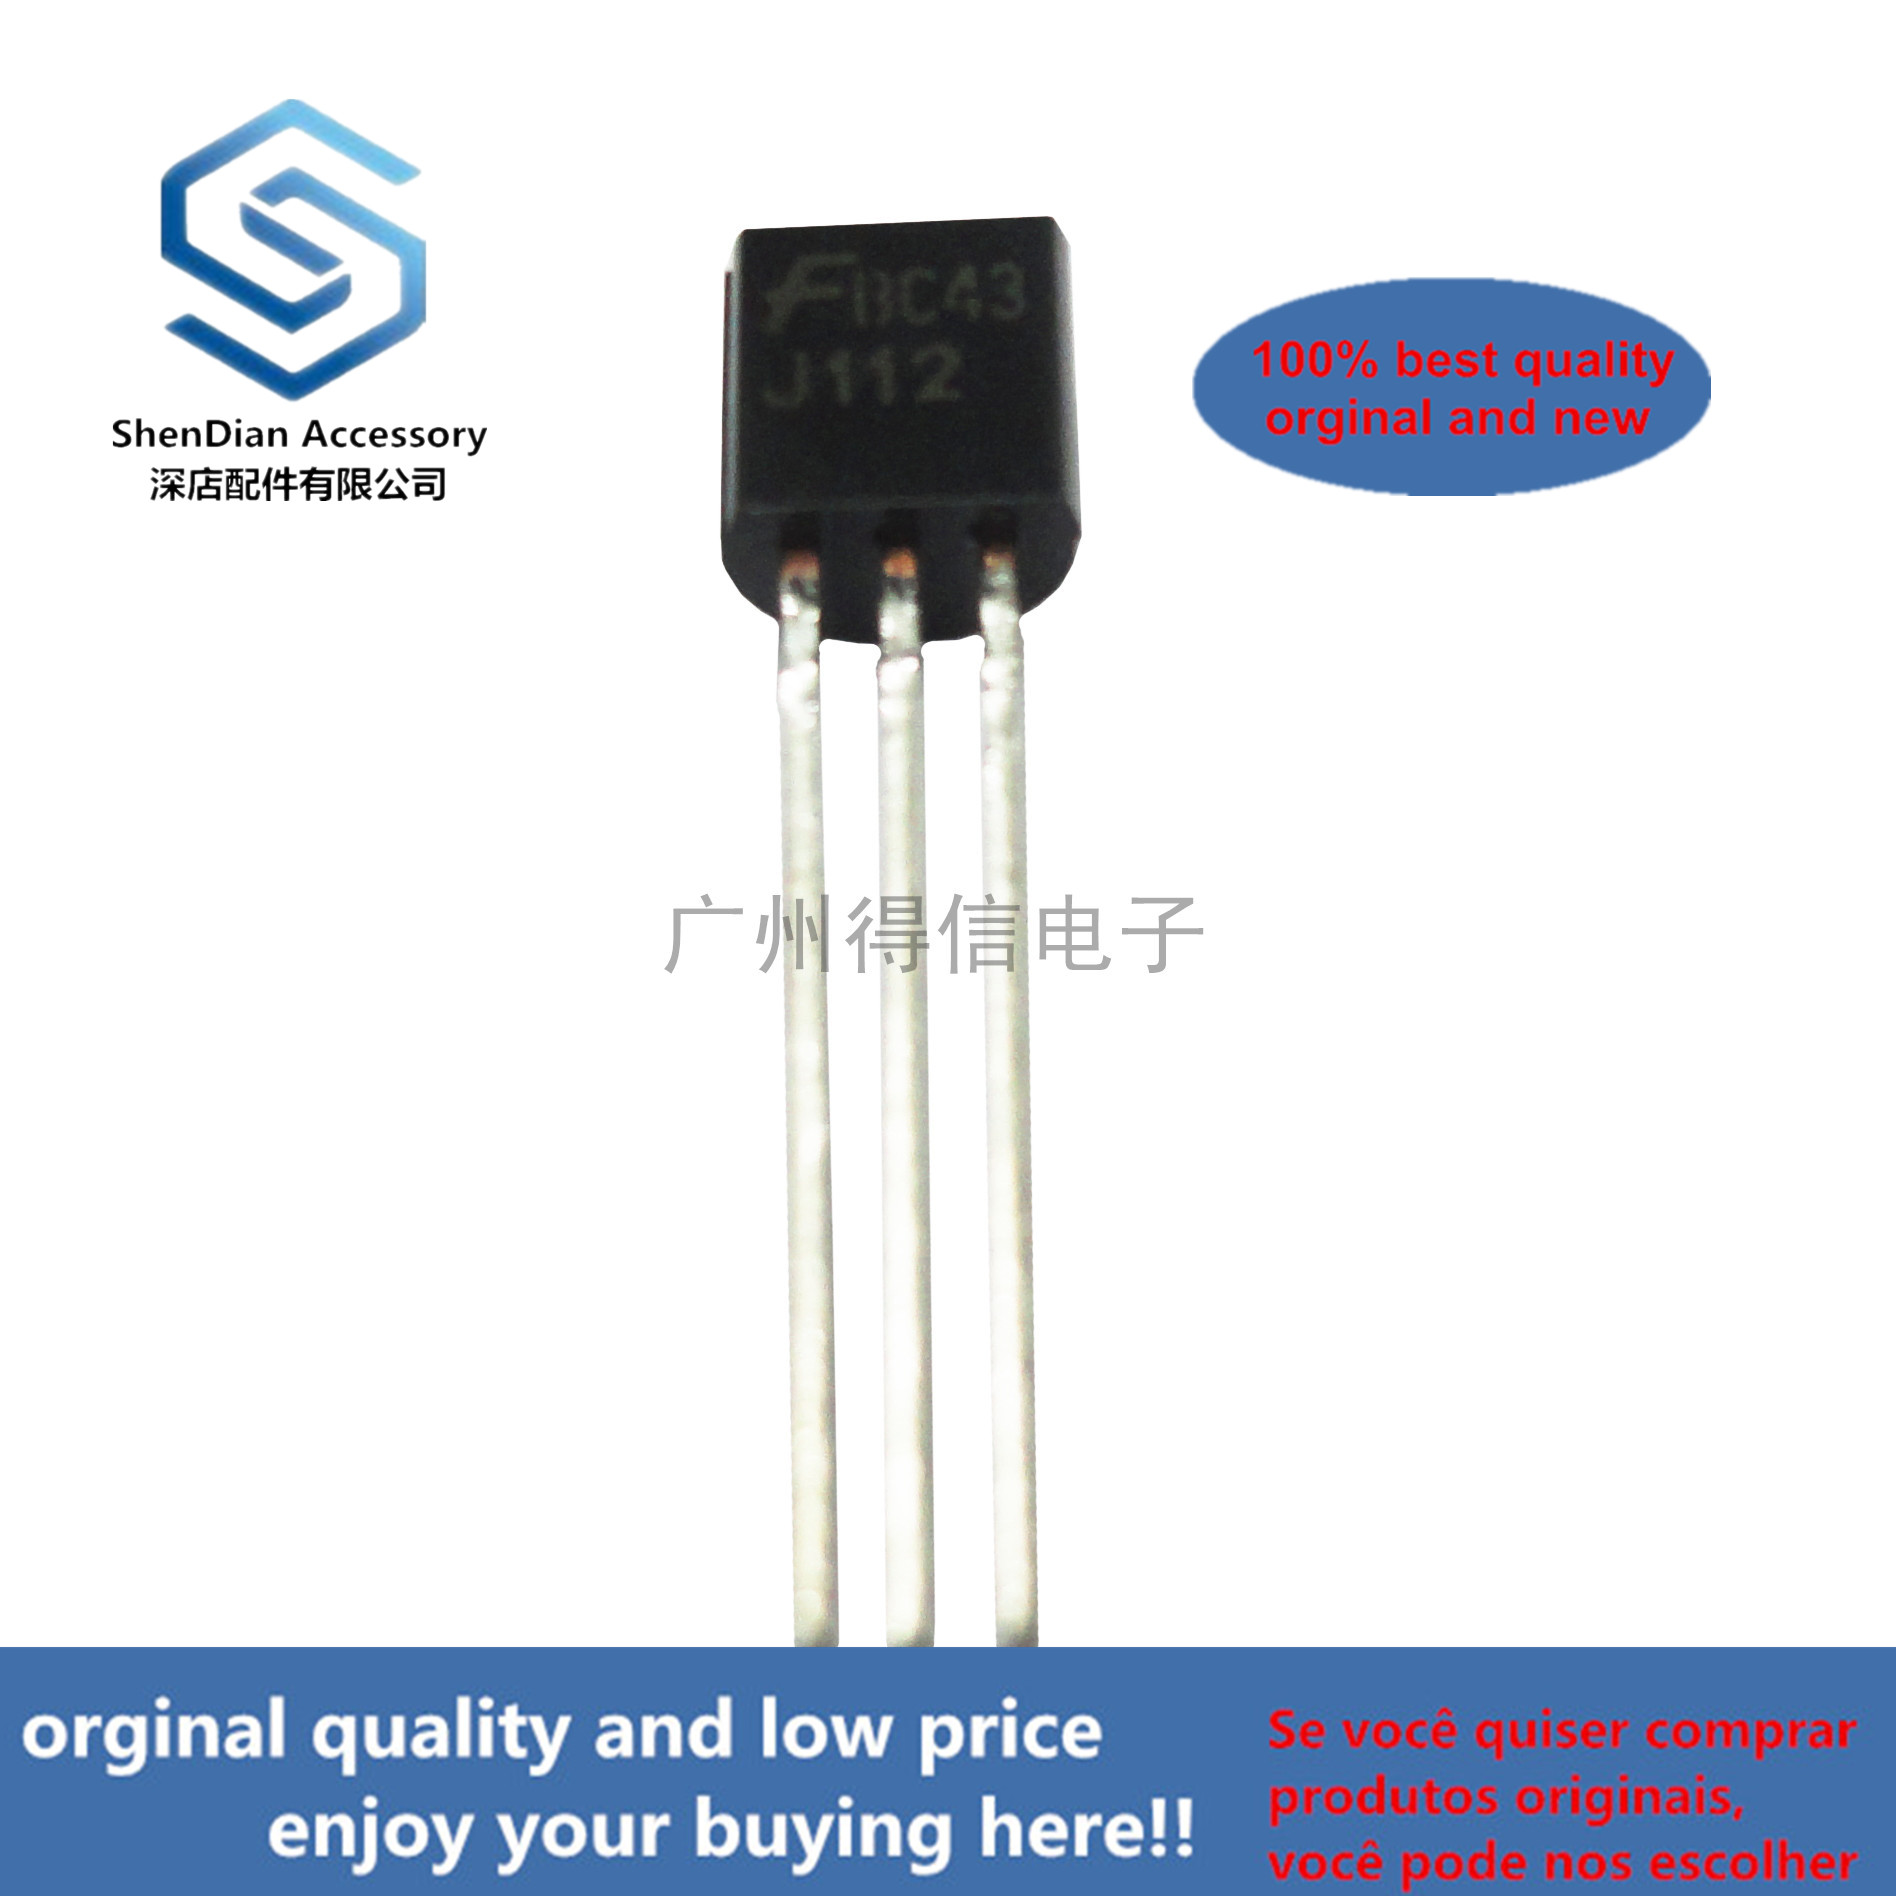 10pcs 100% Orginal New  J112 TO-92 JFET Chopper Transistor (N-Channel- Depletion) Real Photo